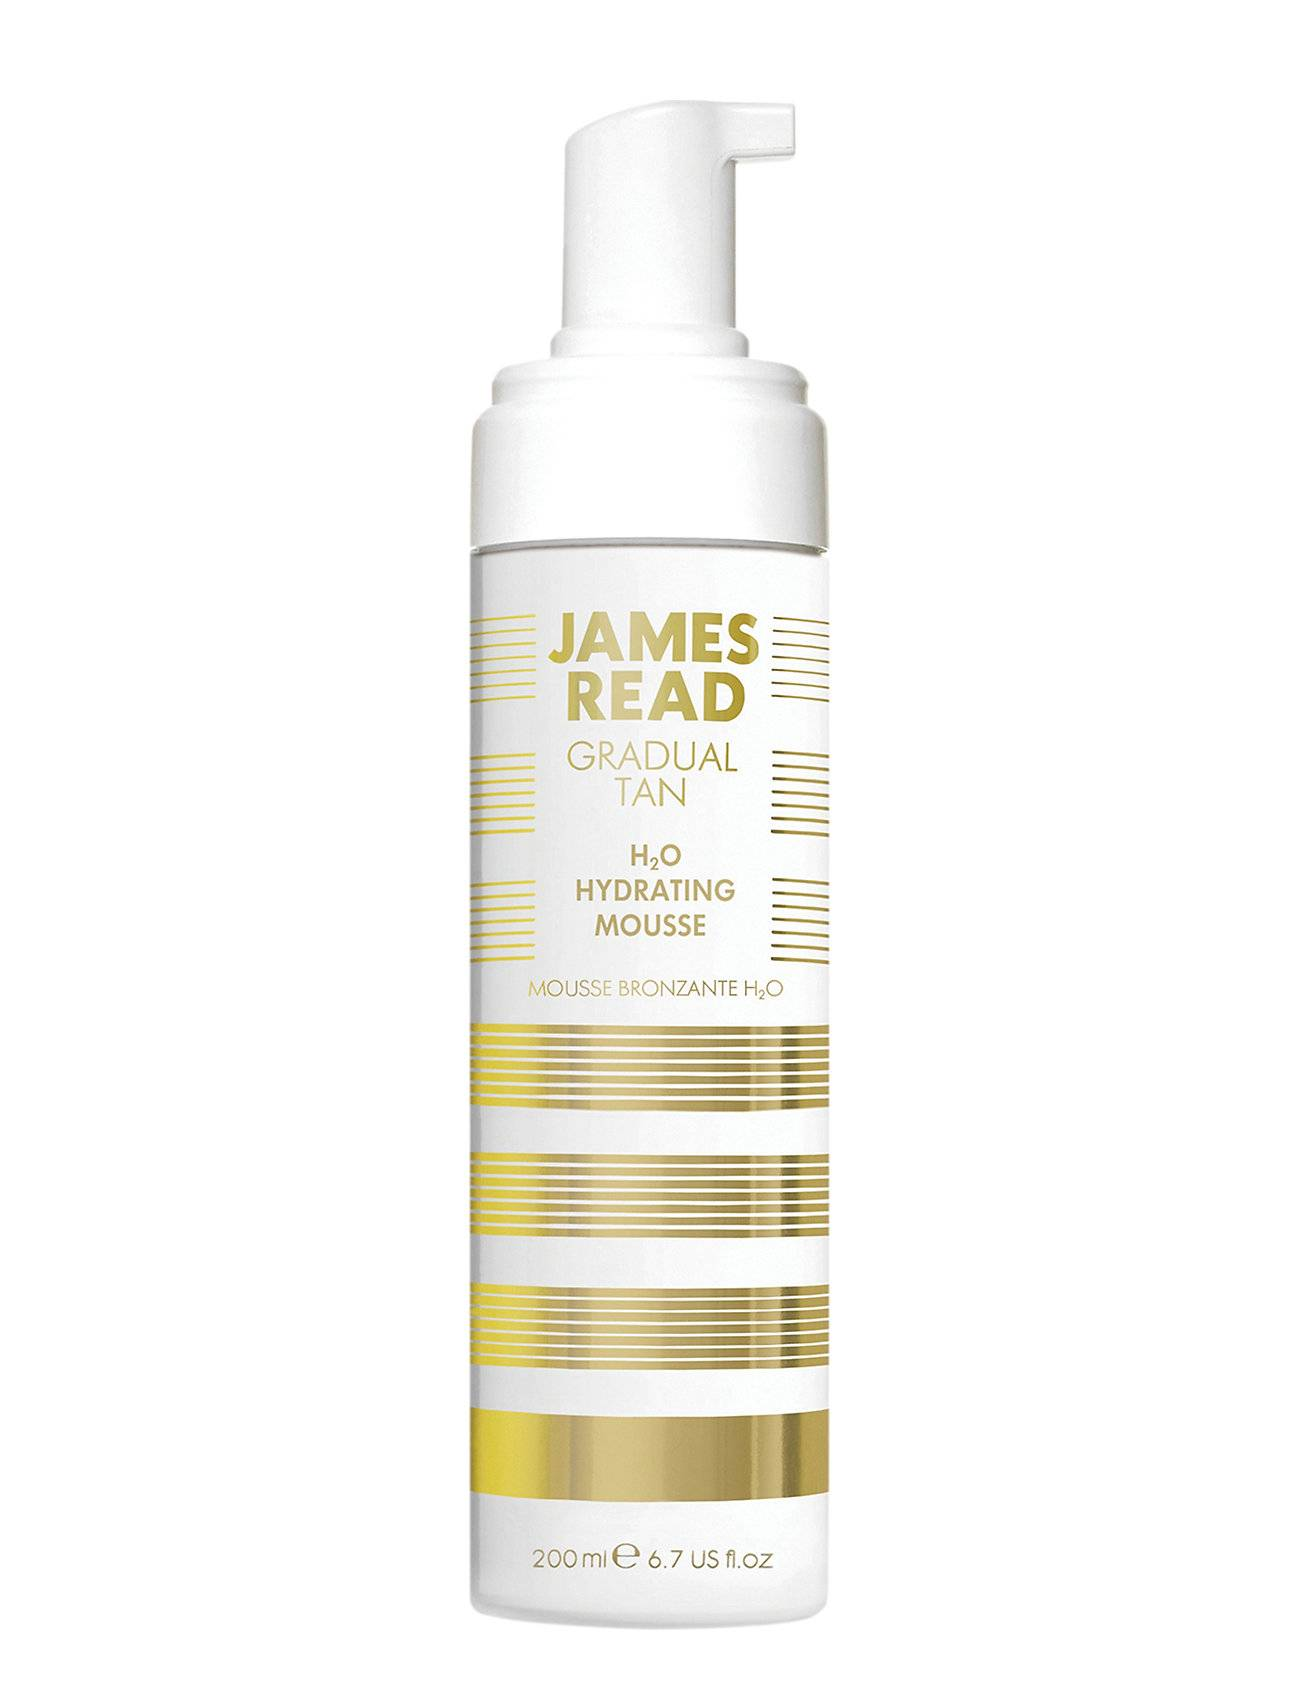 James Read H20 Hydrating Mousse Beauty WOMEN Skin Care Sun Products Self Tanners Nude James Read